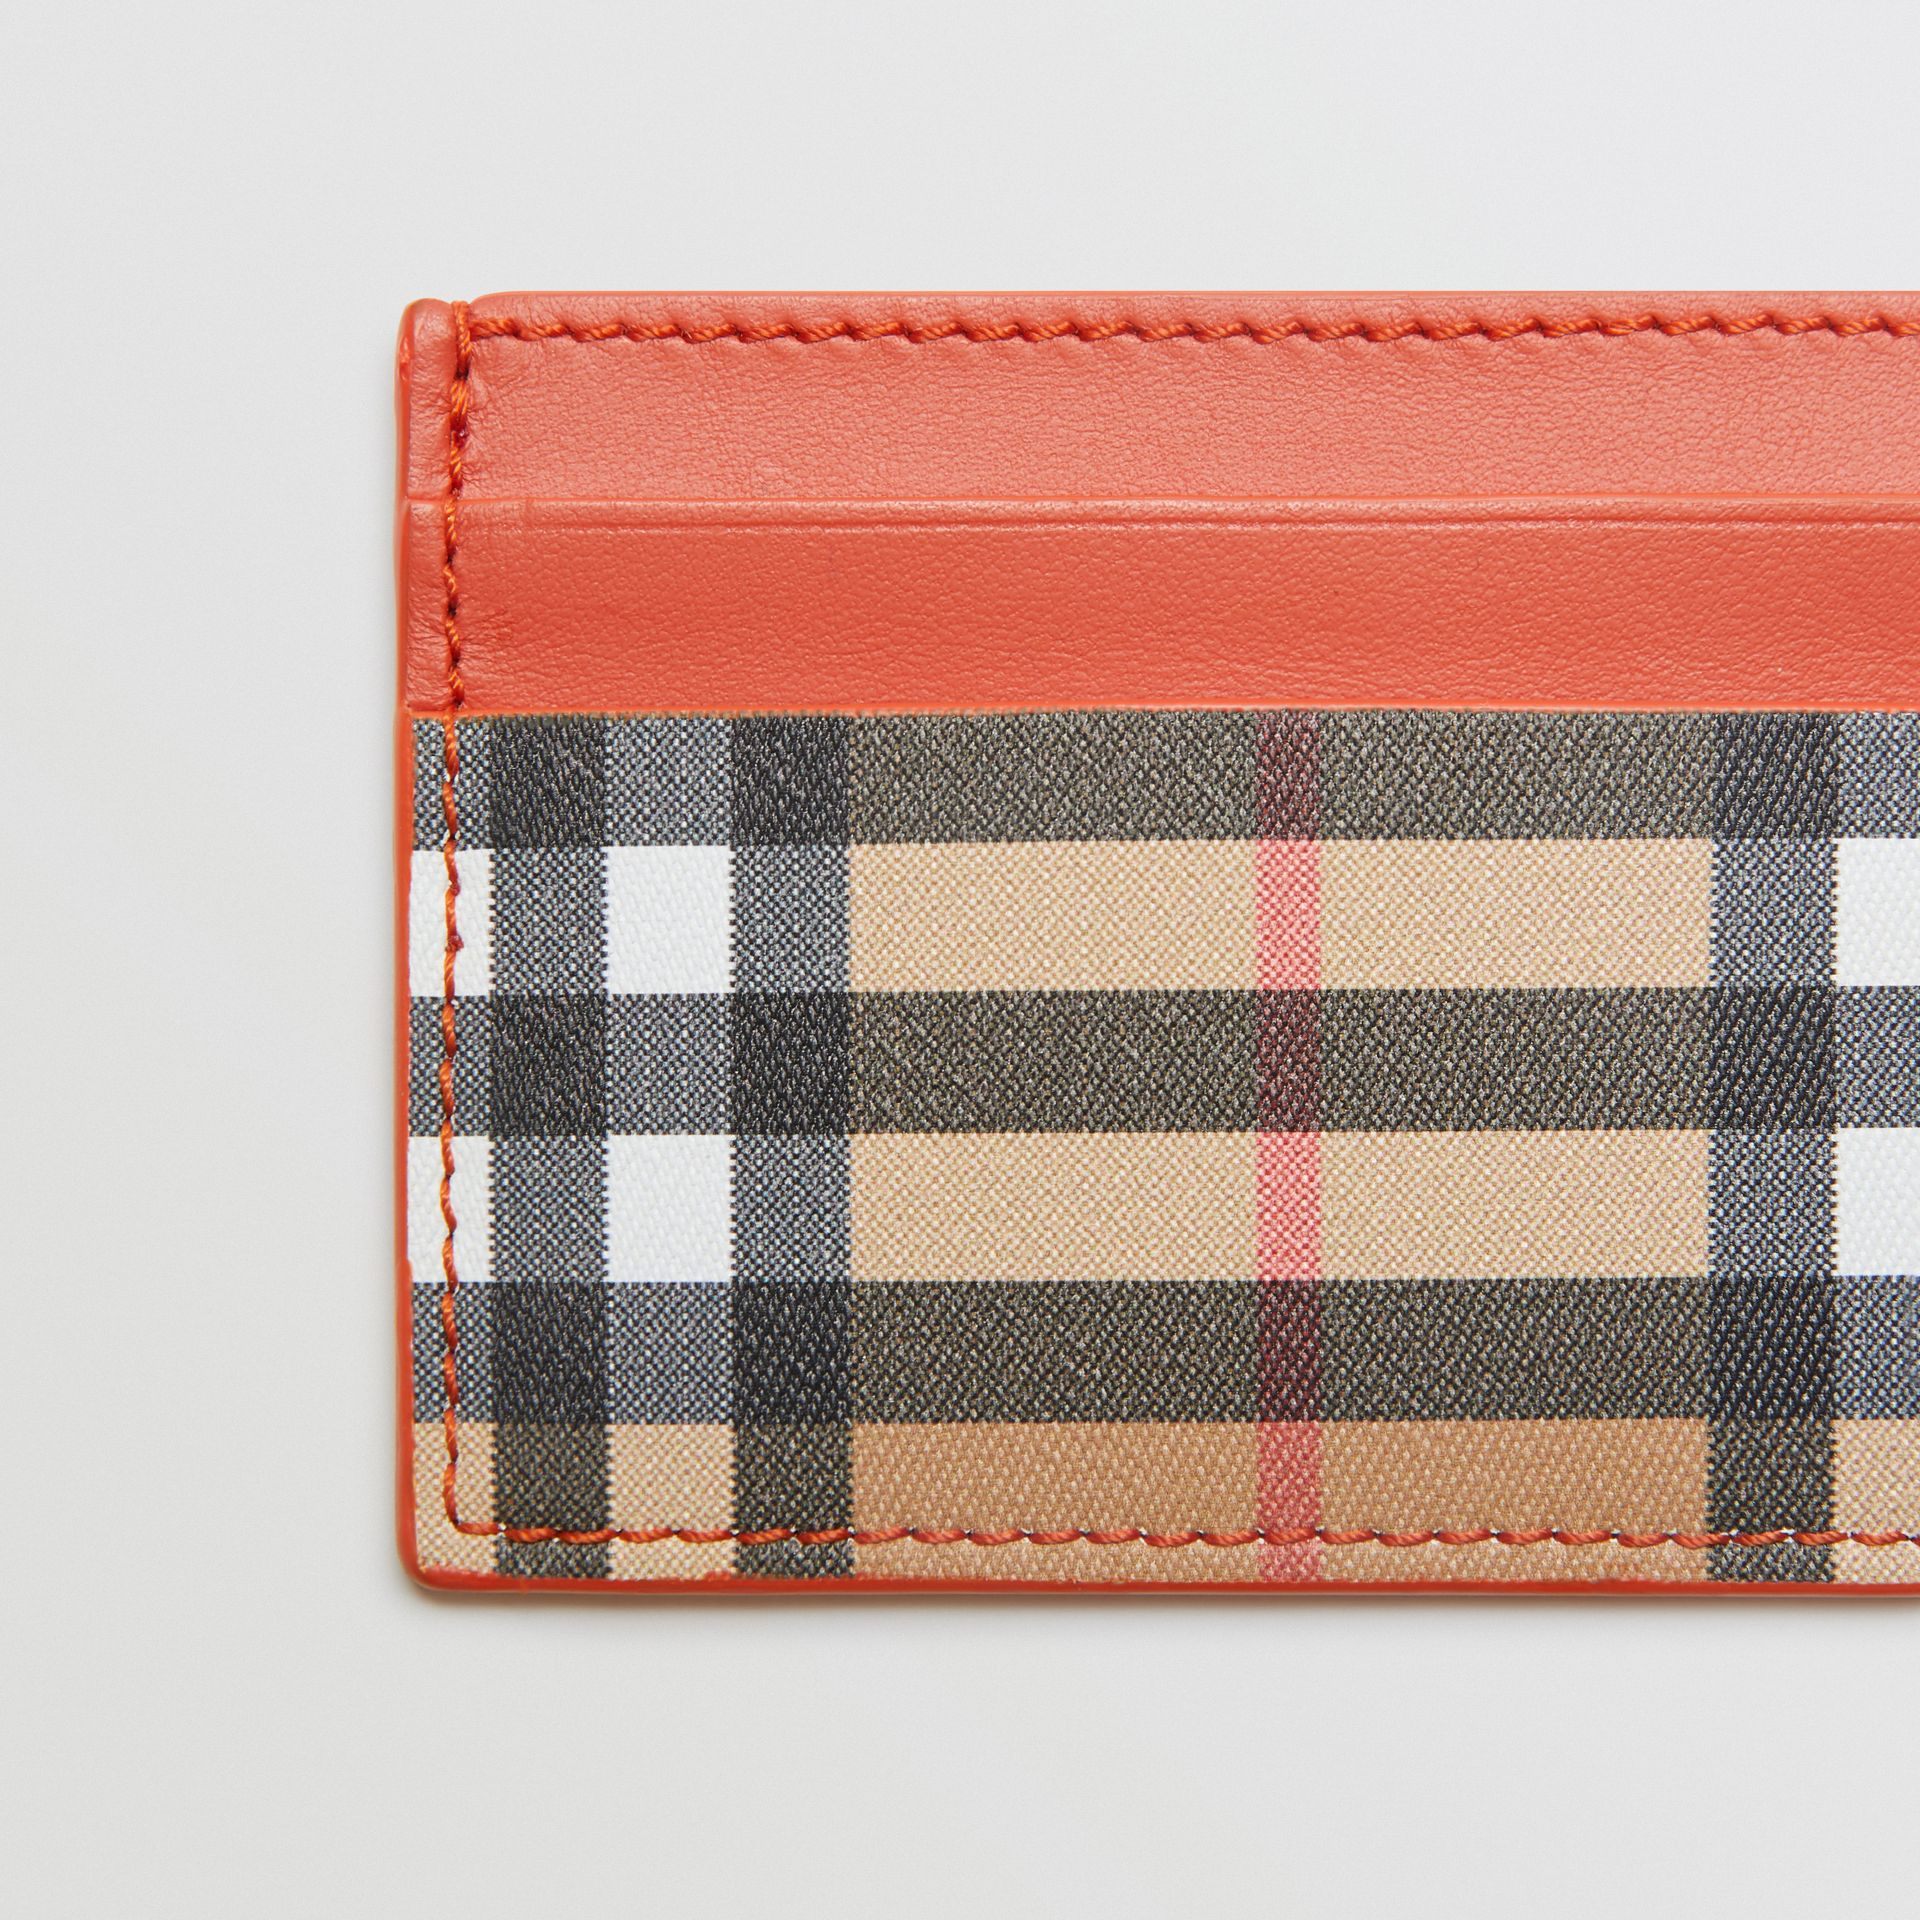 Vintage Check and Leather Card Case in Clementine - Women | Burberry Hong Kong S.A.R - gallery image 1